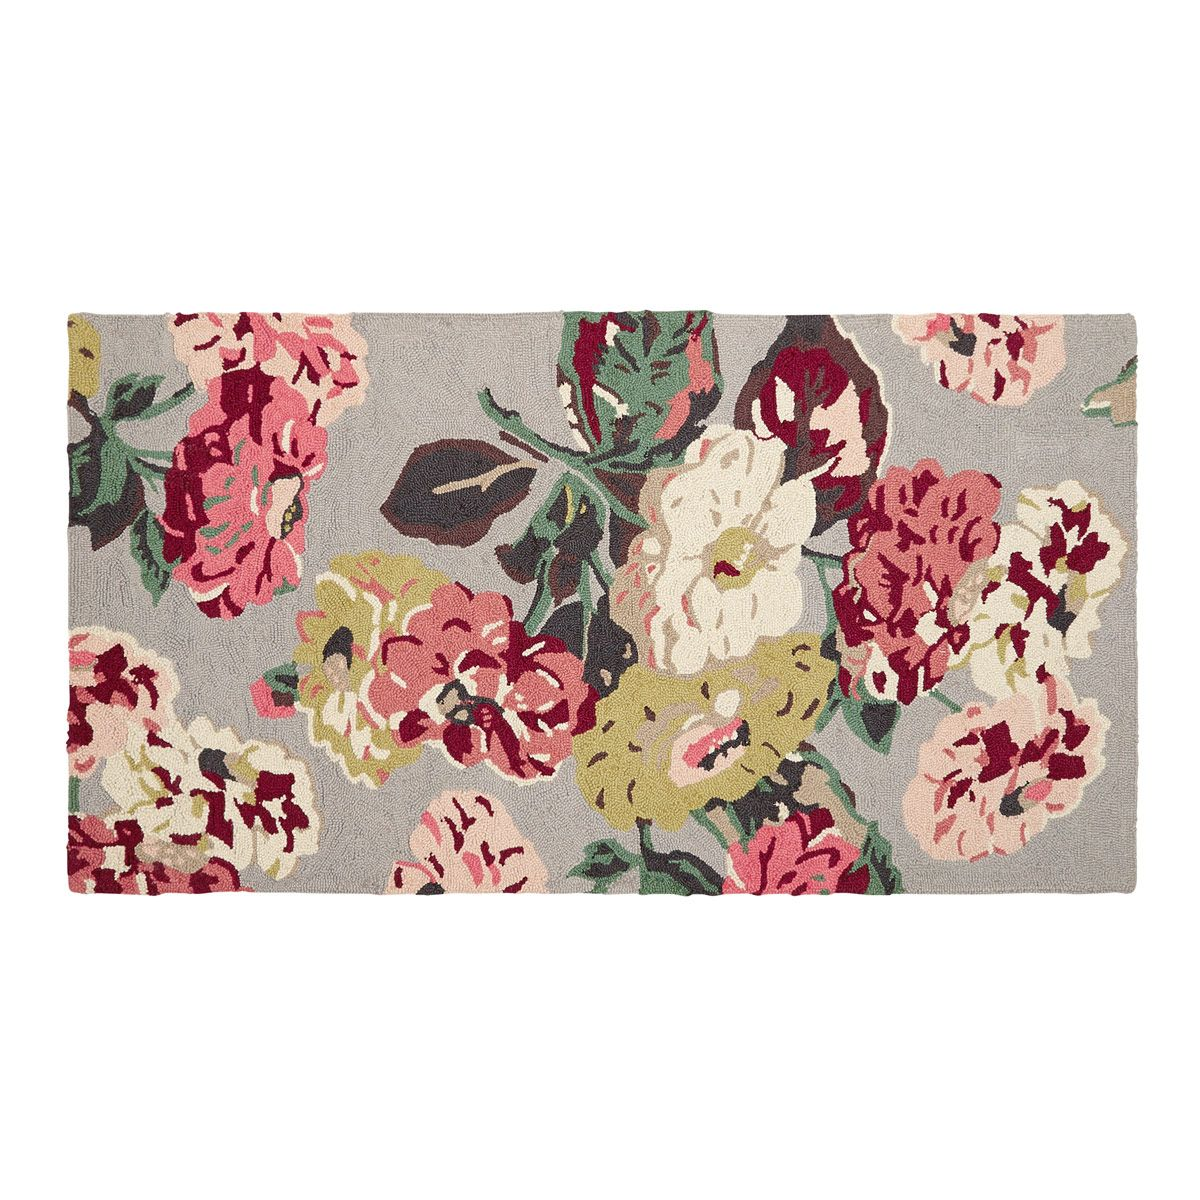 Autumn Bloom Rug By Cath Kidston A